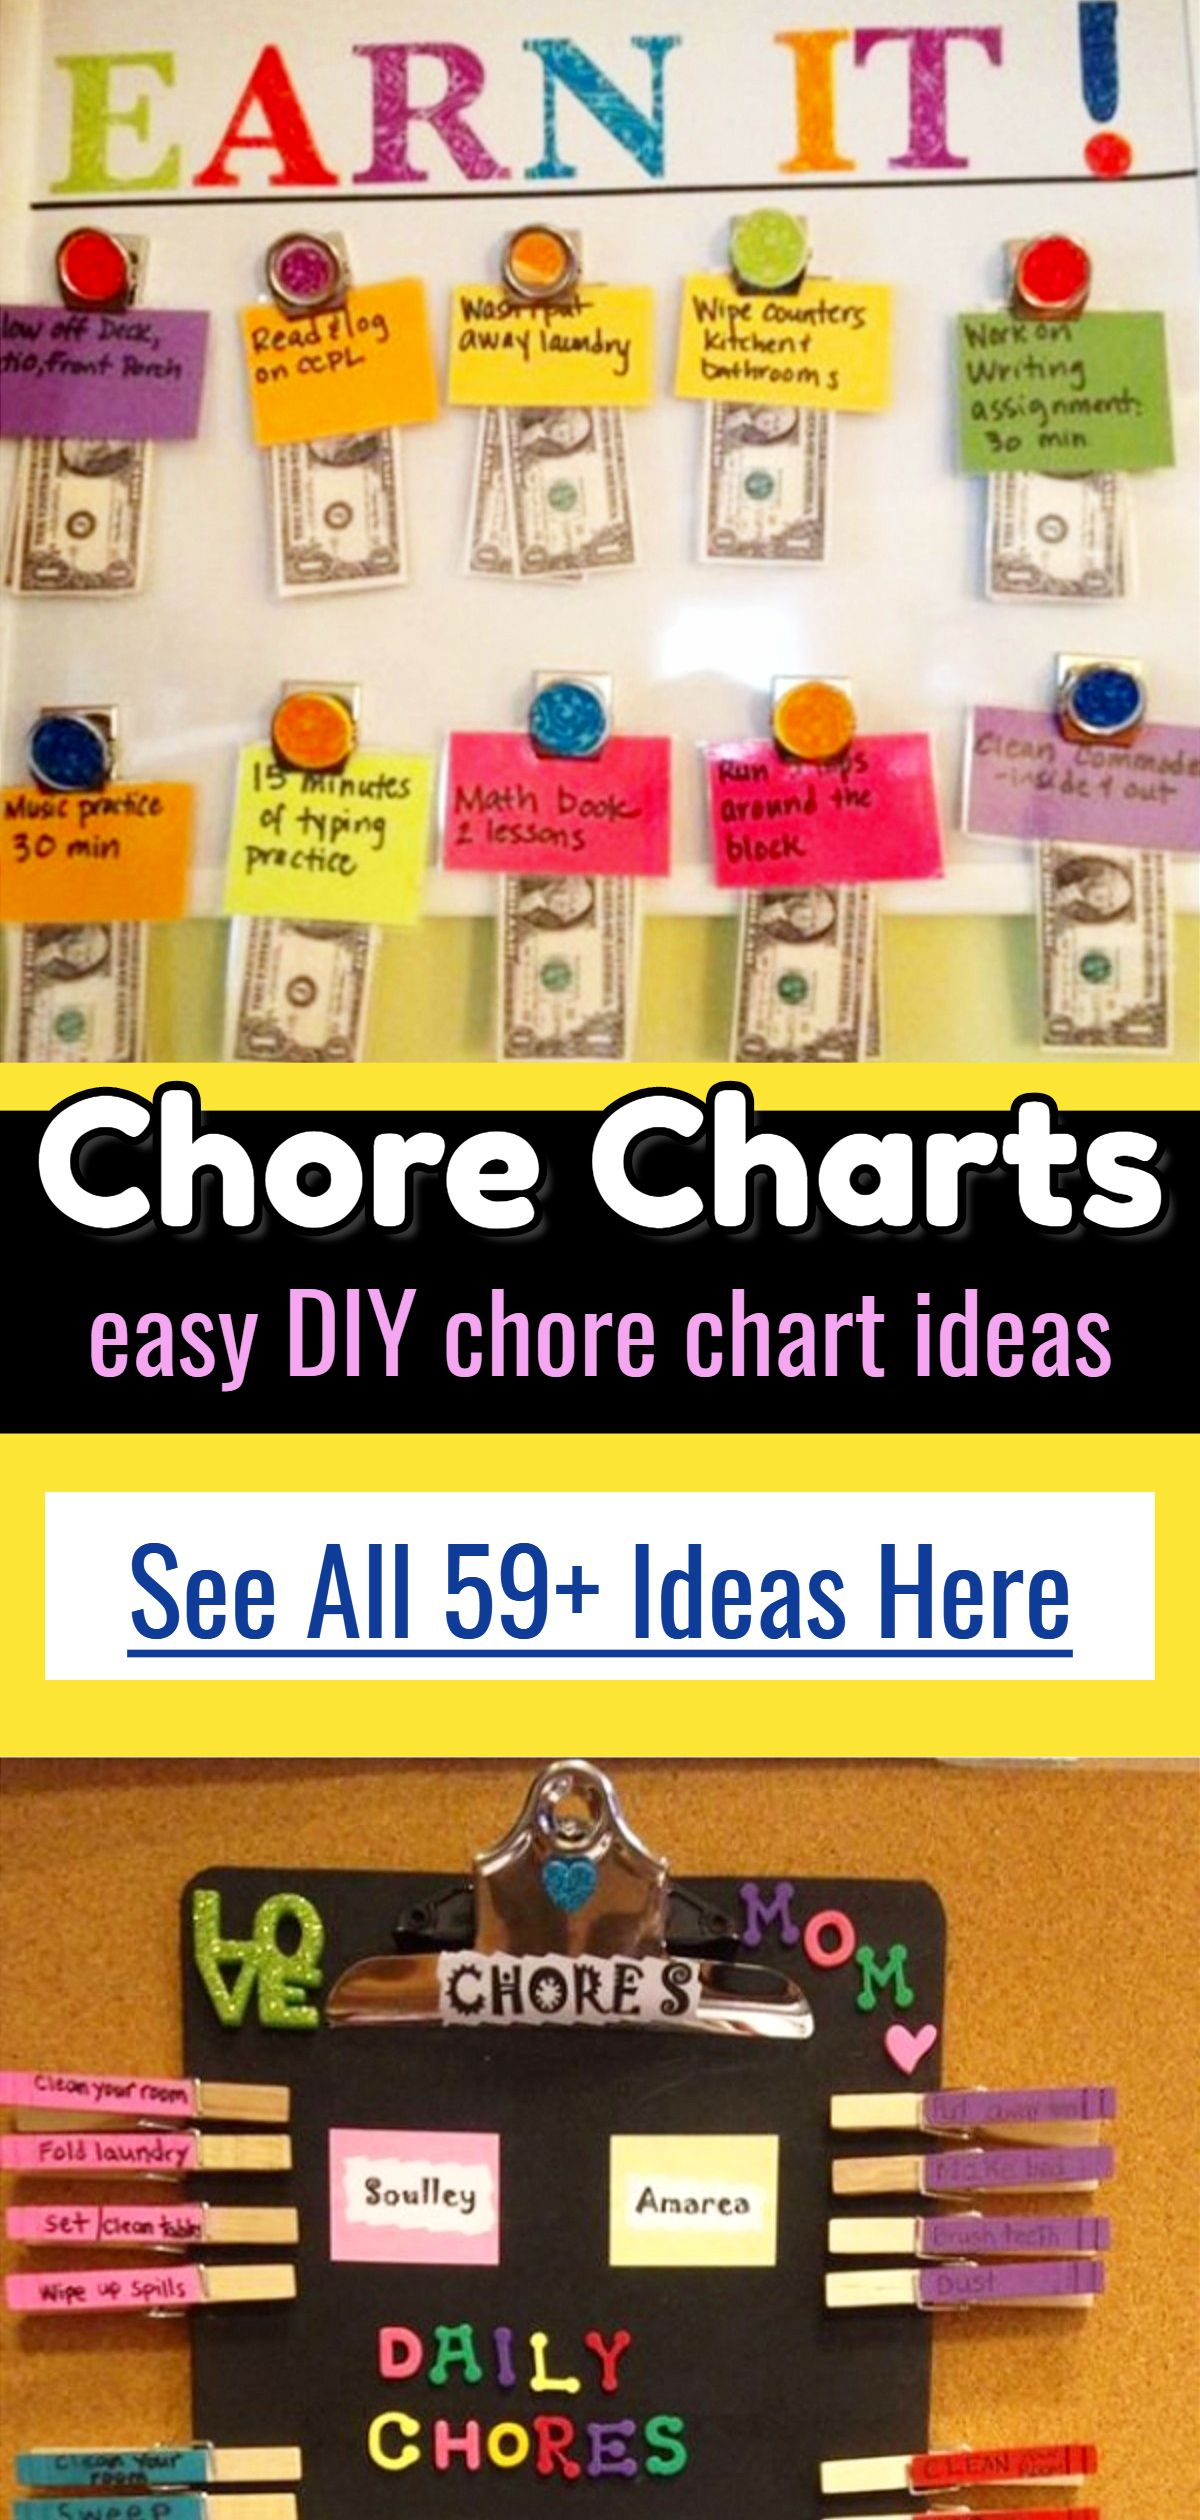 Chore chart ideas charts are  great visual reminder for your child to know that it   time this helps kids get in routine whether also multiple diy boards rh pinterest